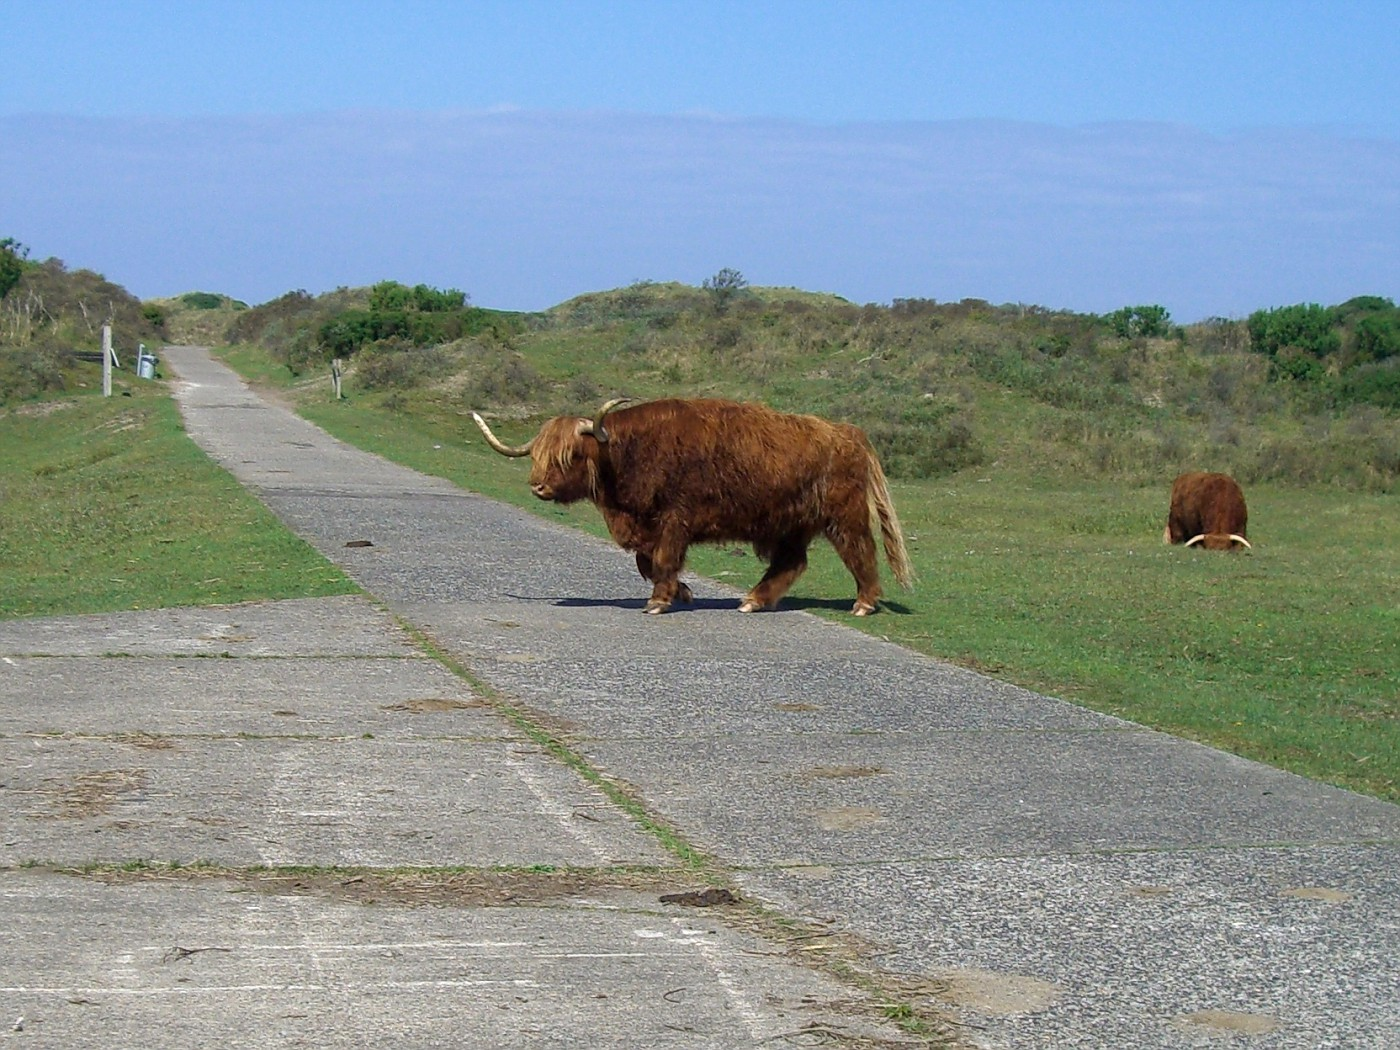 Bison crossing cycle track in Kennemerland